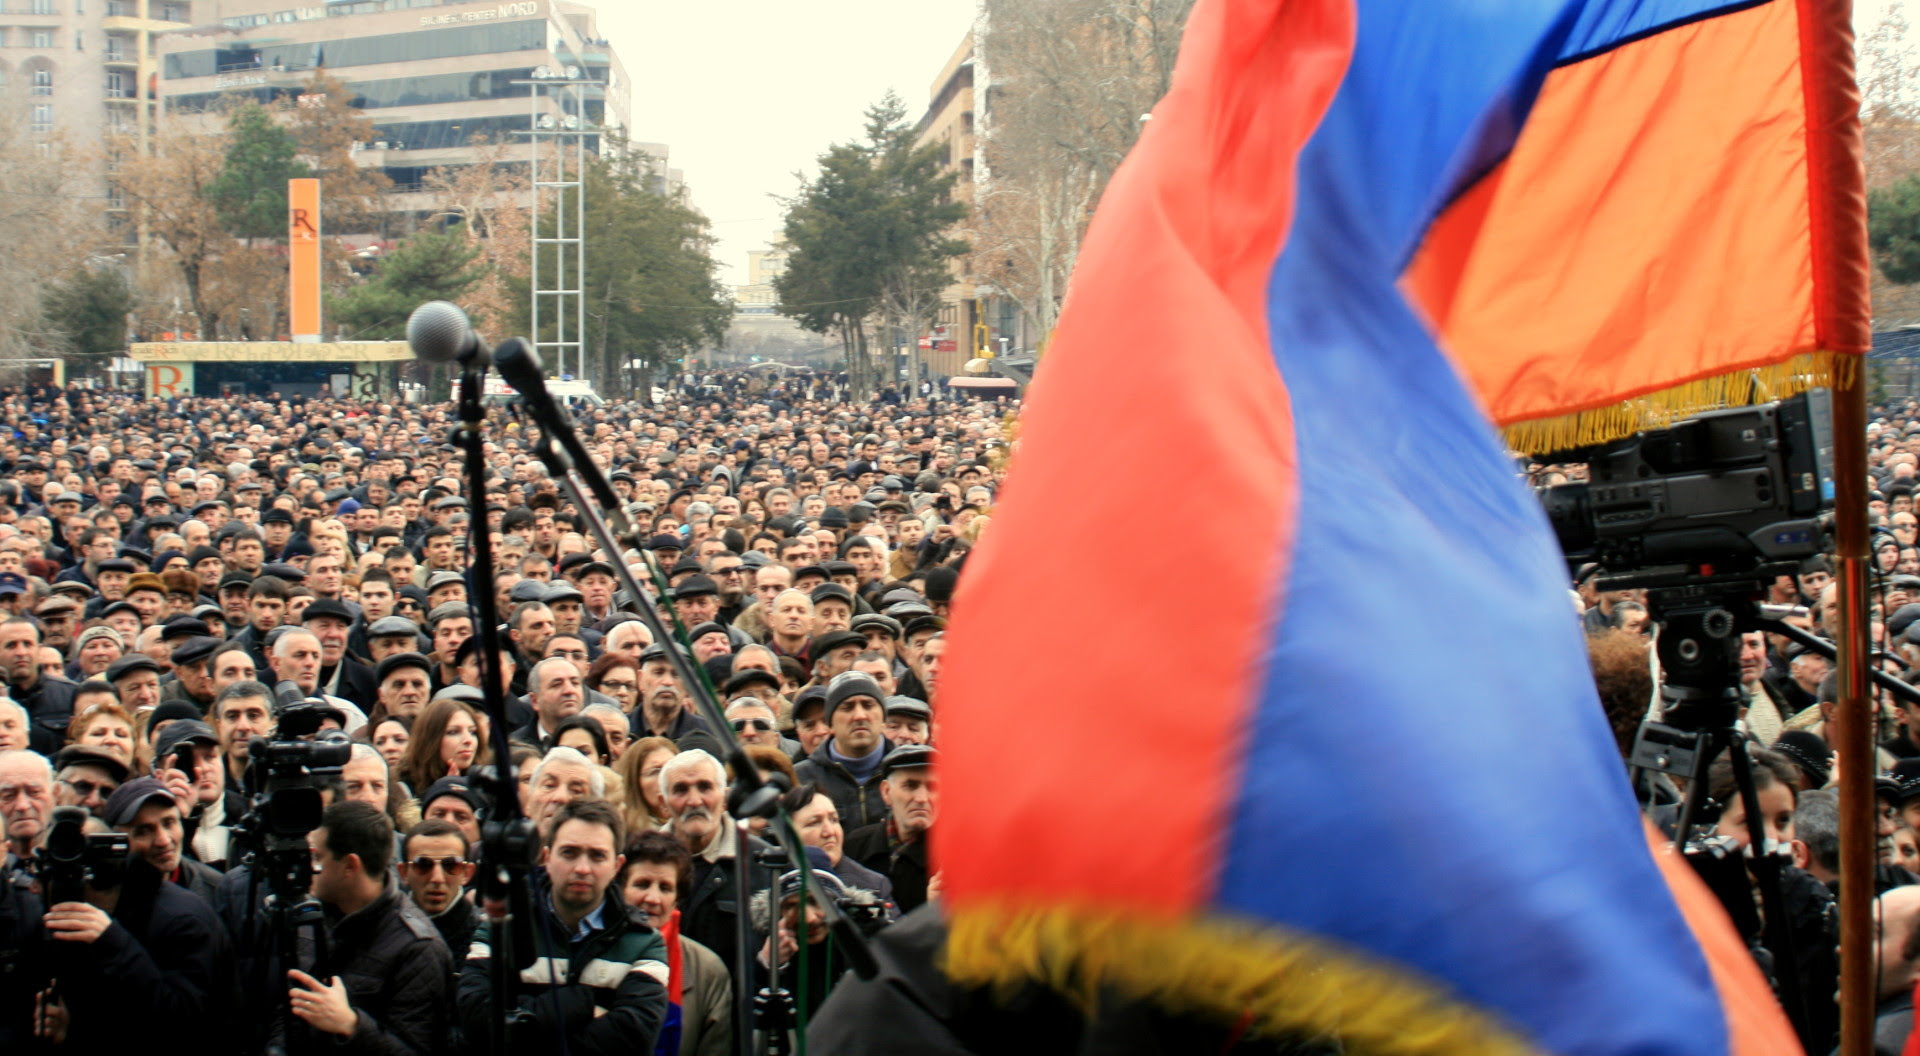 http://www.armenianweekly.com/wp-content/uploads/2013/03/IMG_85461.jpg